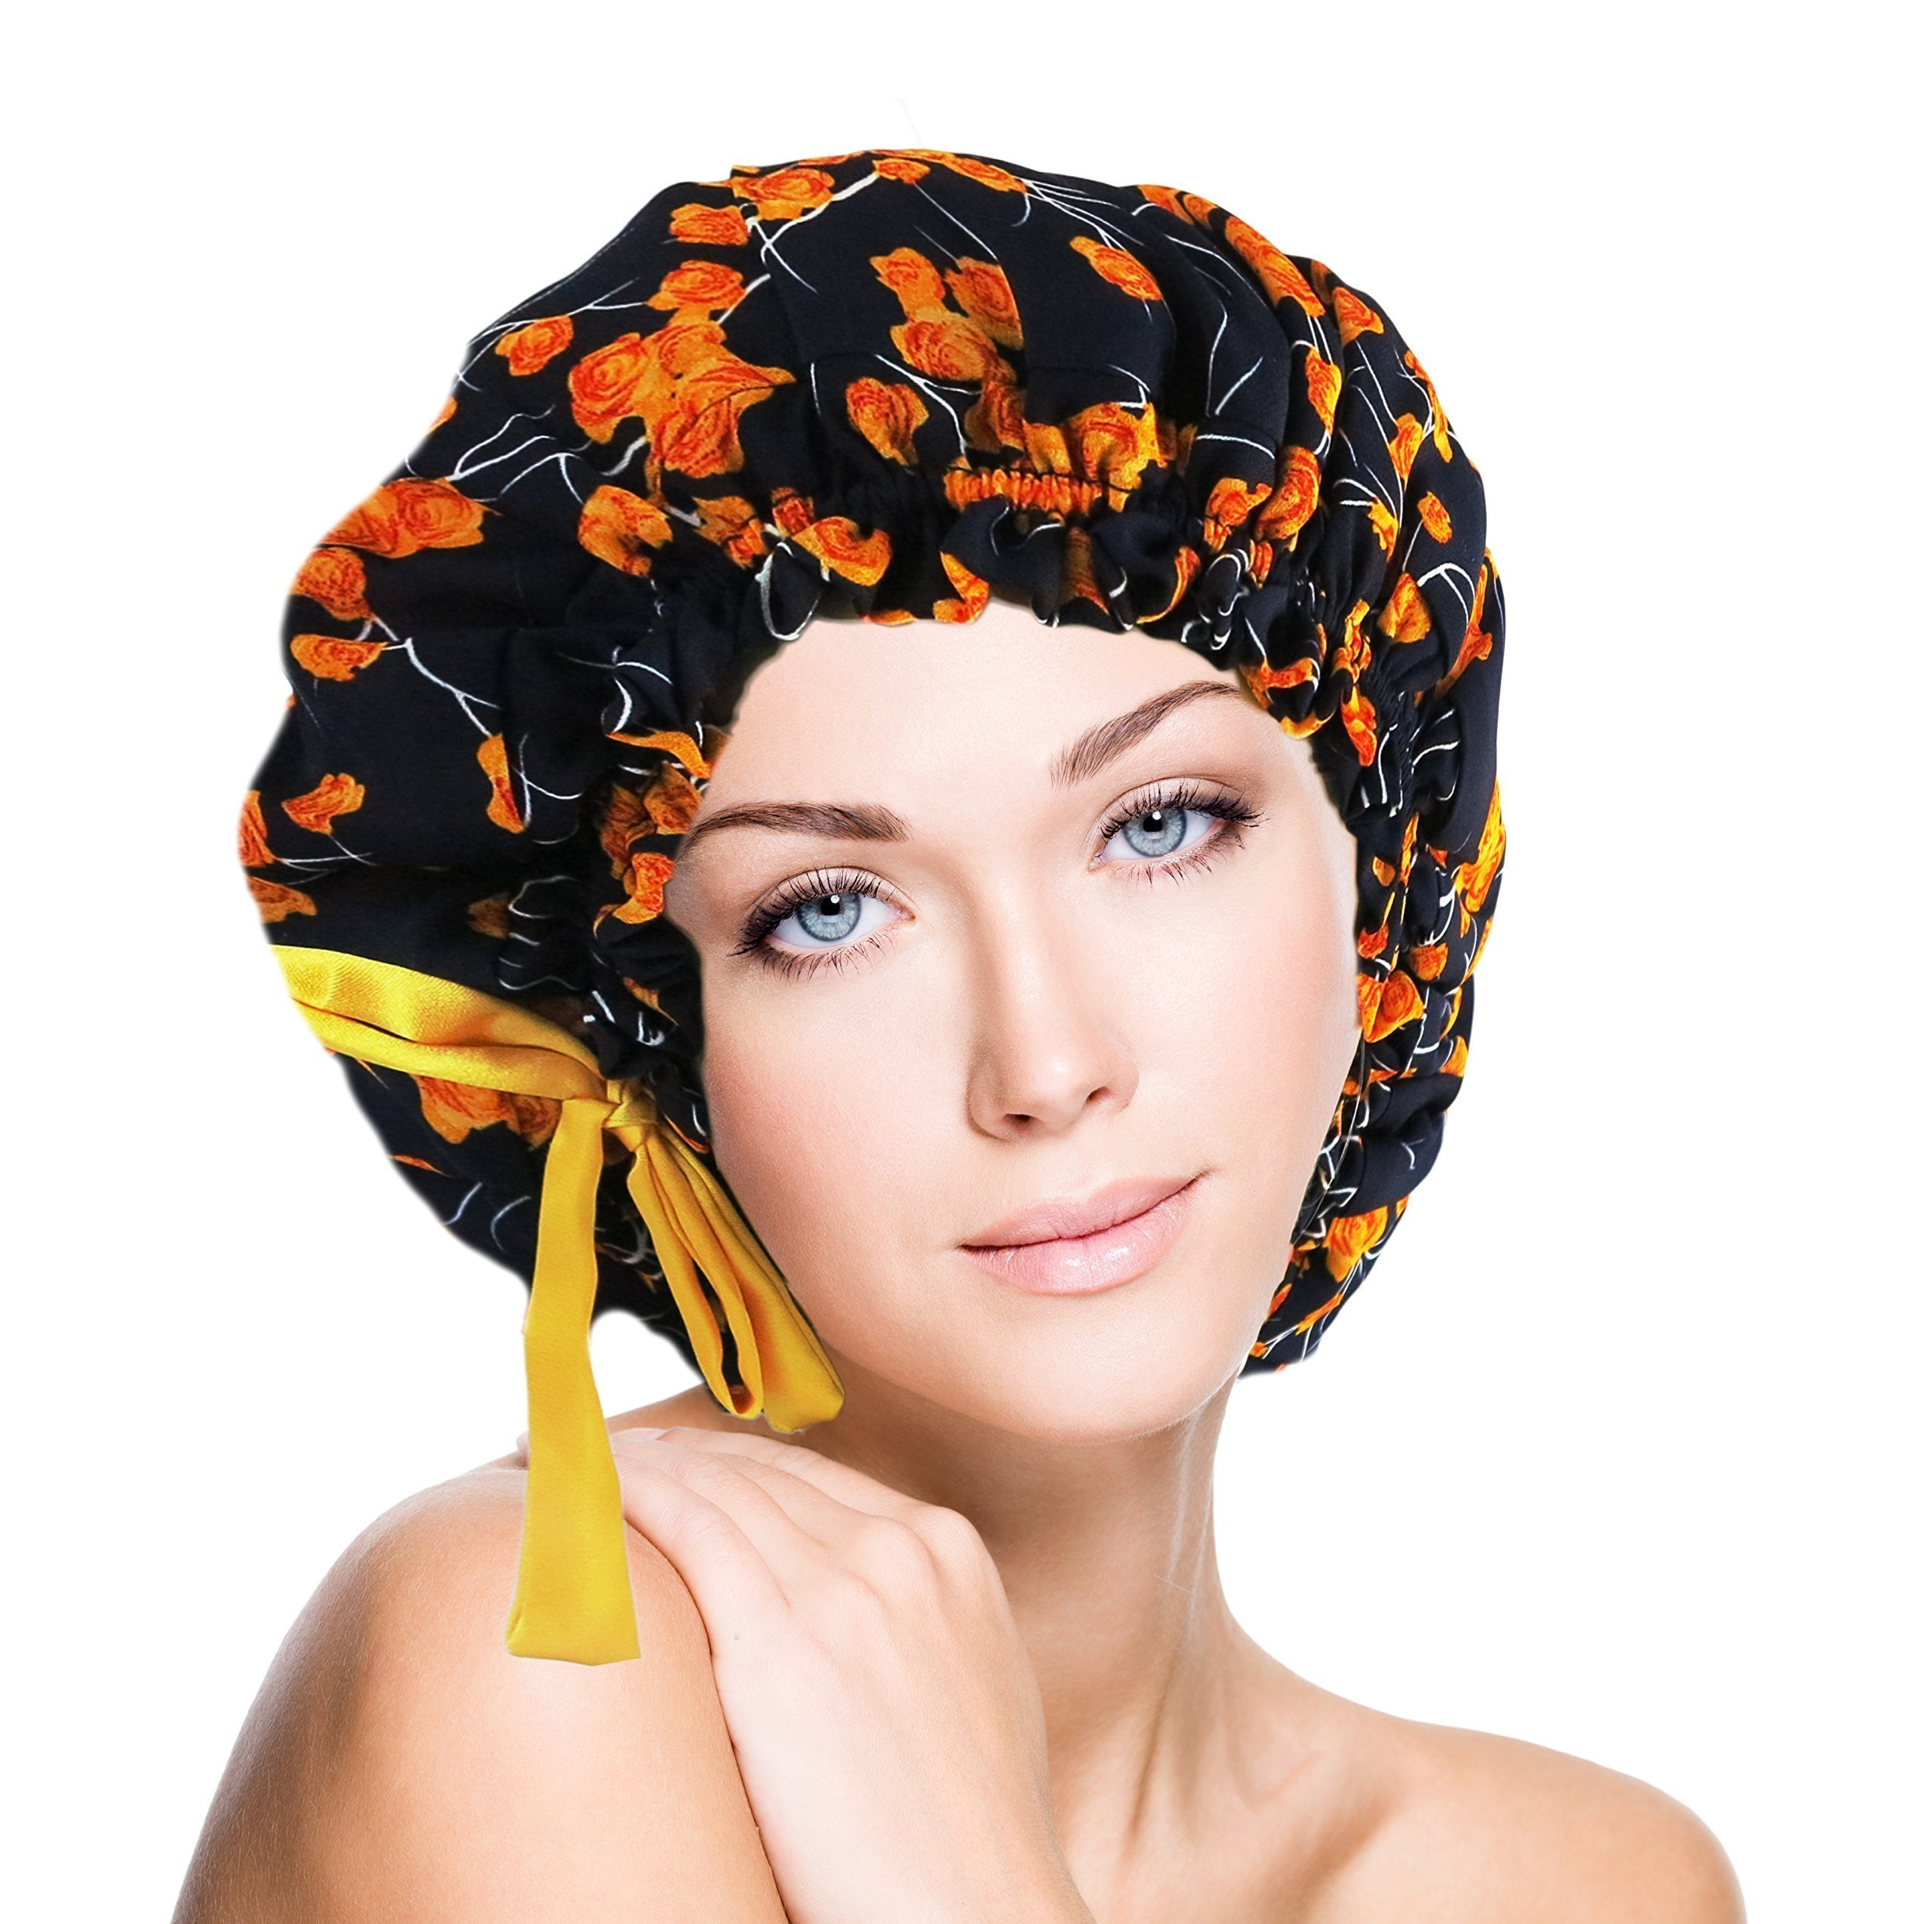 Silk Cap Sleep Bonnet Double Layers Fully Adjustable Roses Fits SMALL- X LARGE- HANDMADE in USA-Ship out within 12 hours